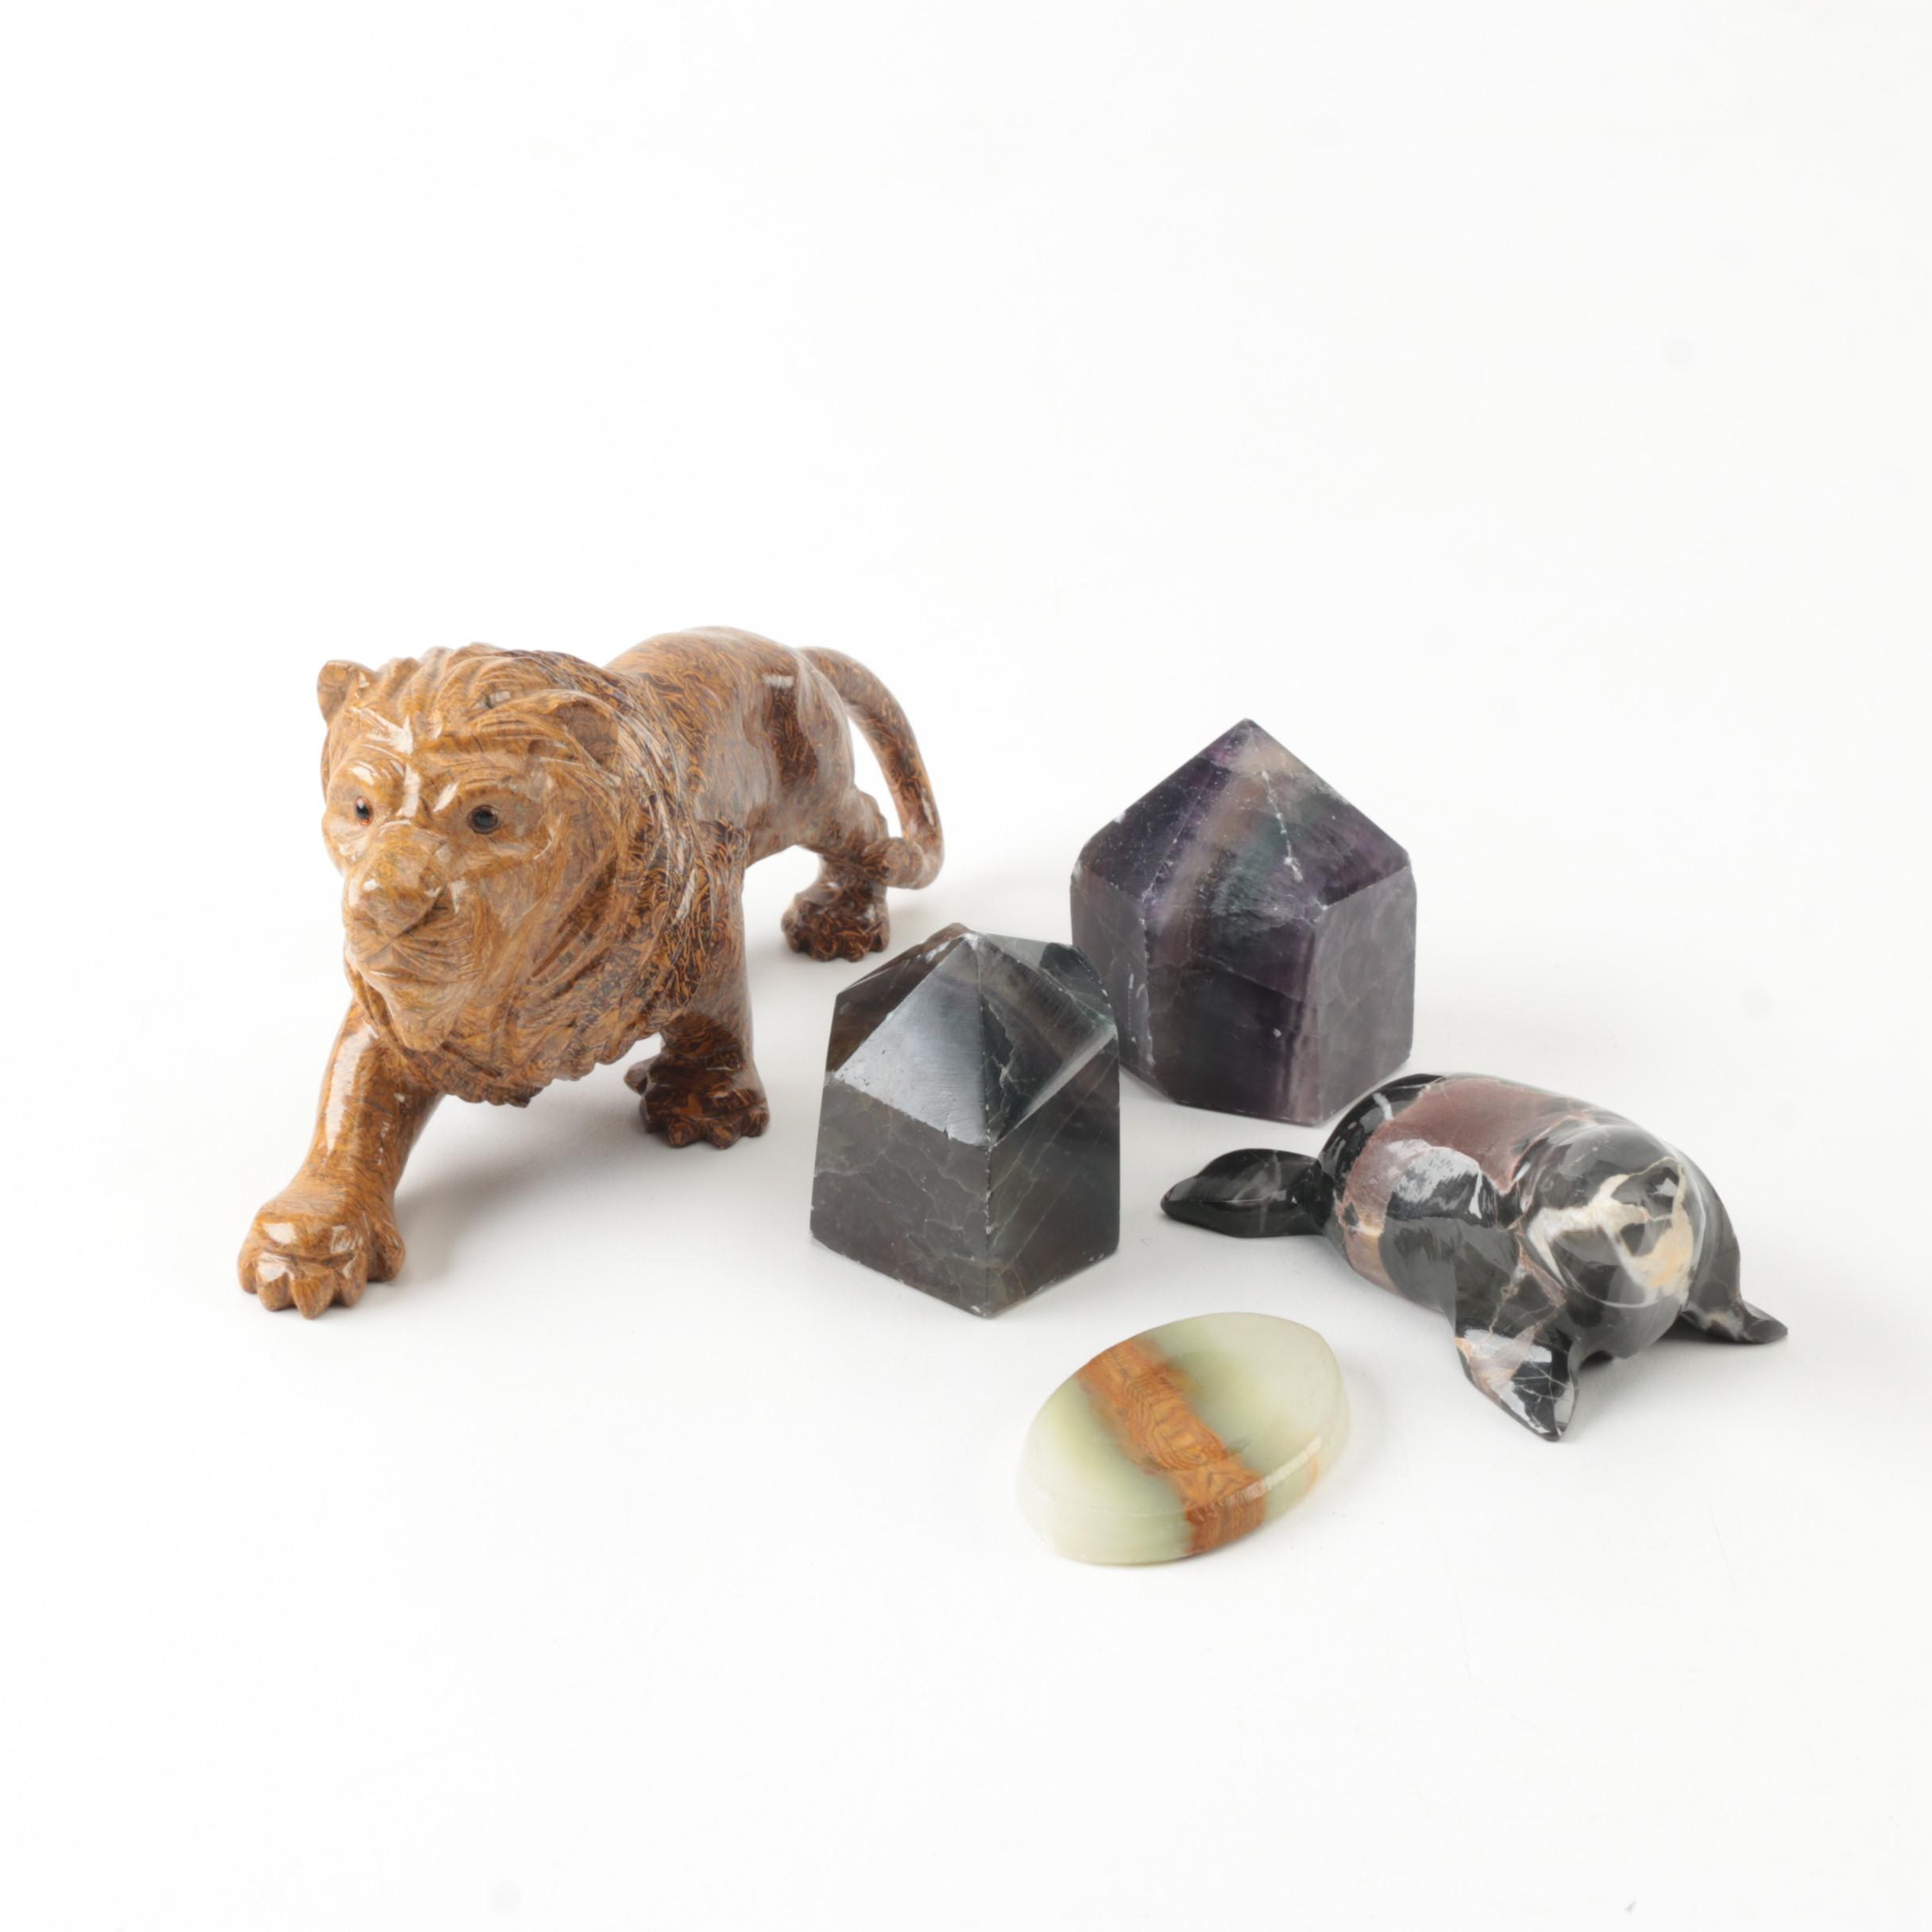 Mineral Figurines and Specimens